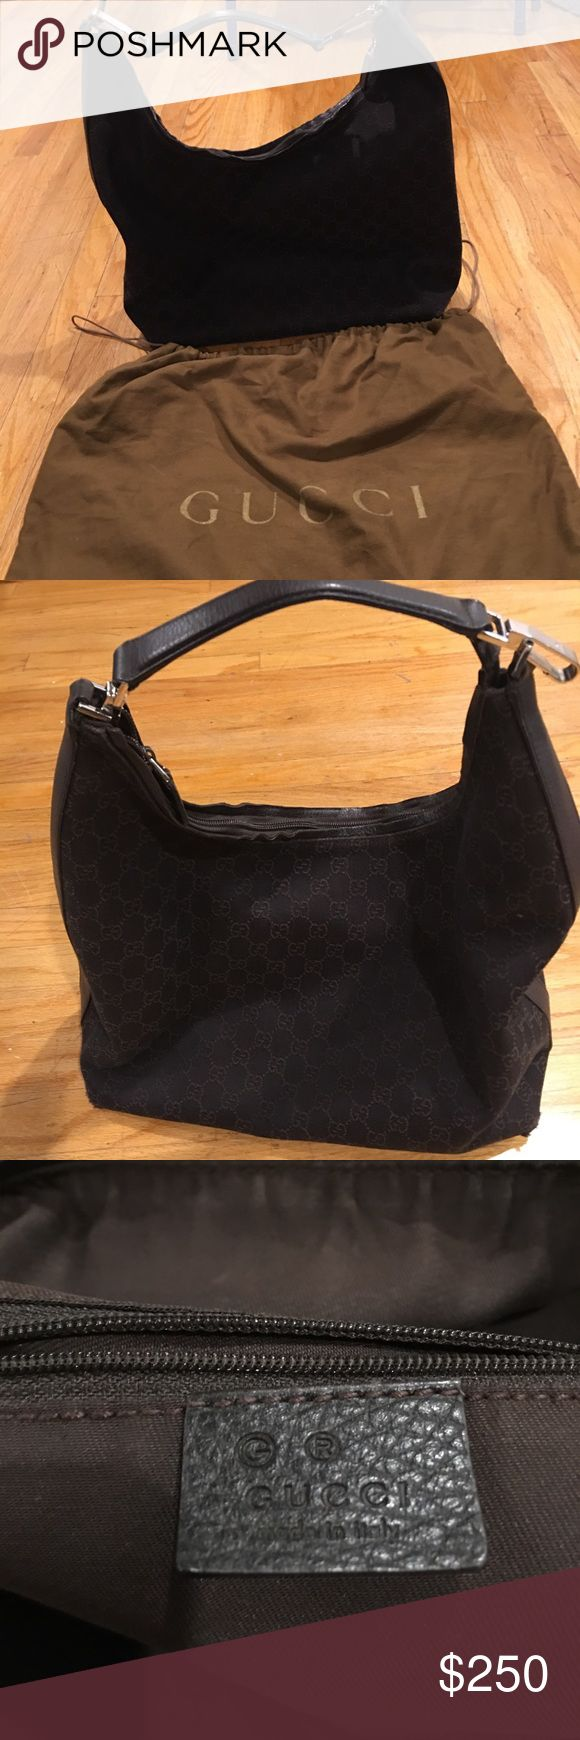 Authentic Gucci logo hobo bag Authentic Gucci logo bag Made with Gucci fabric, leather handle  Normal wear and tear Good condition Bundle to save $$ Gucci Bags Hobos